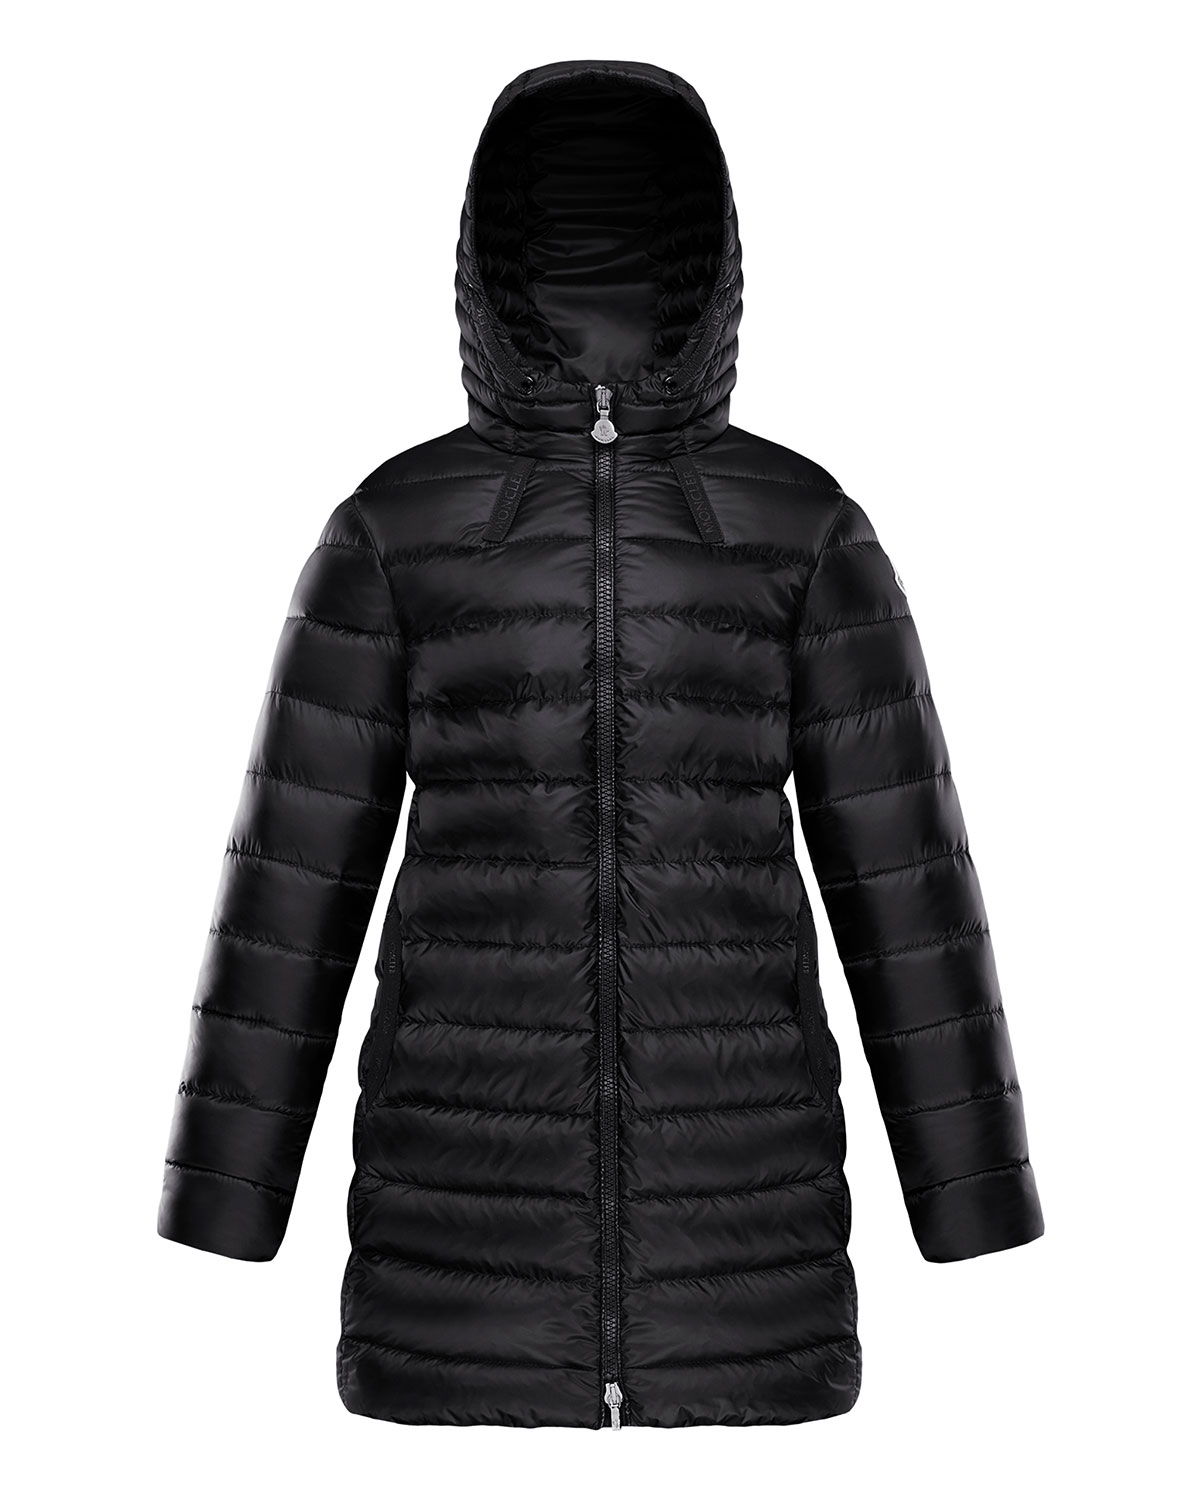 Moncler GIRL'S JACINTE HOODED LONG QUILTED PARKA